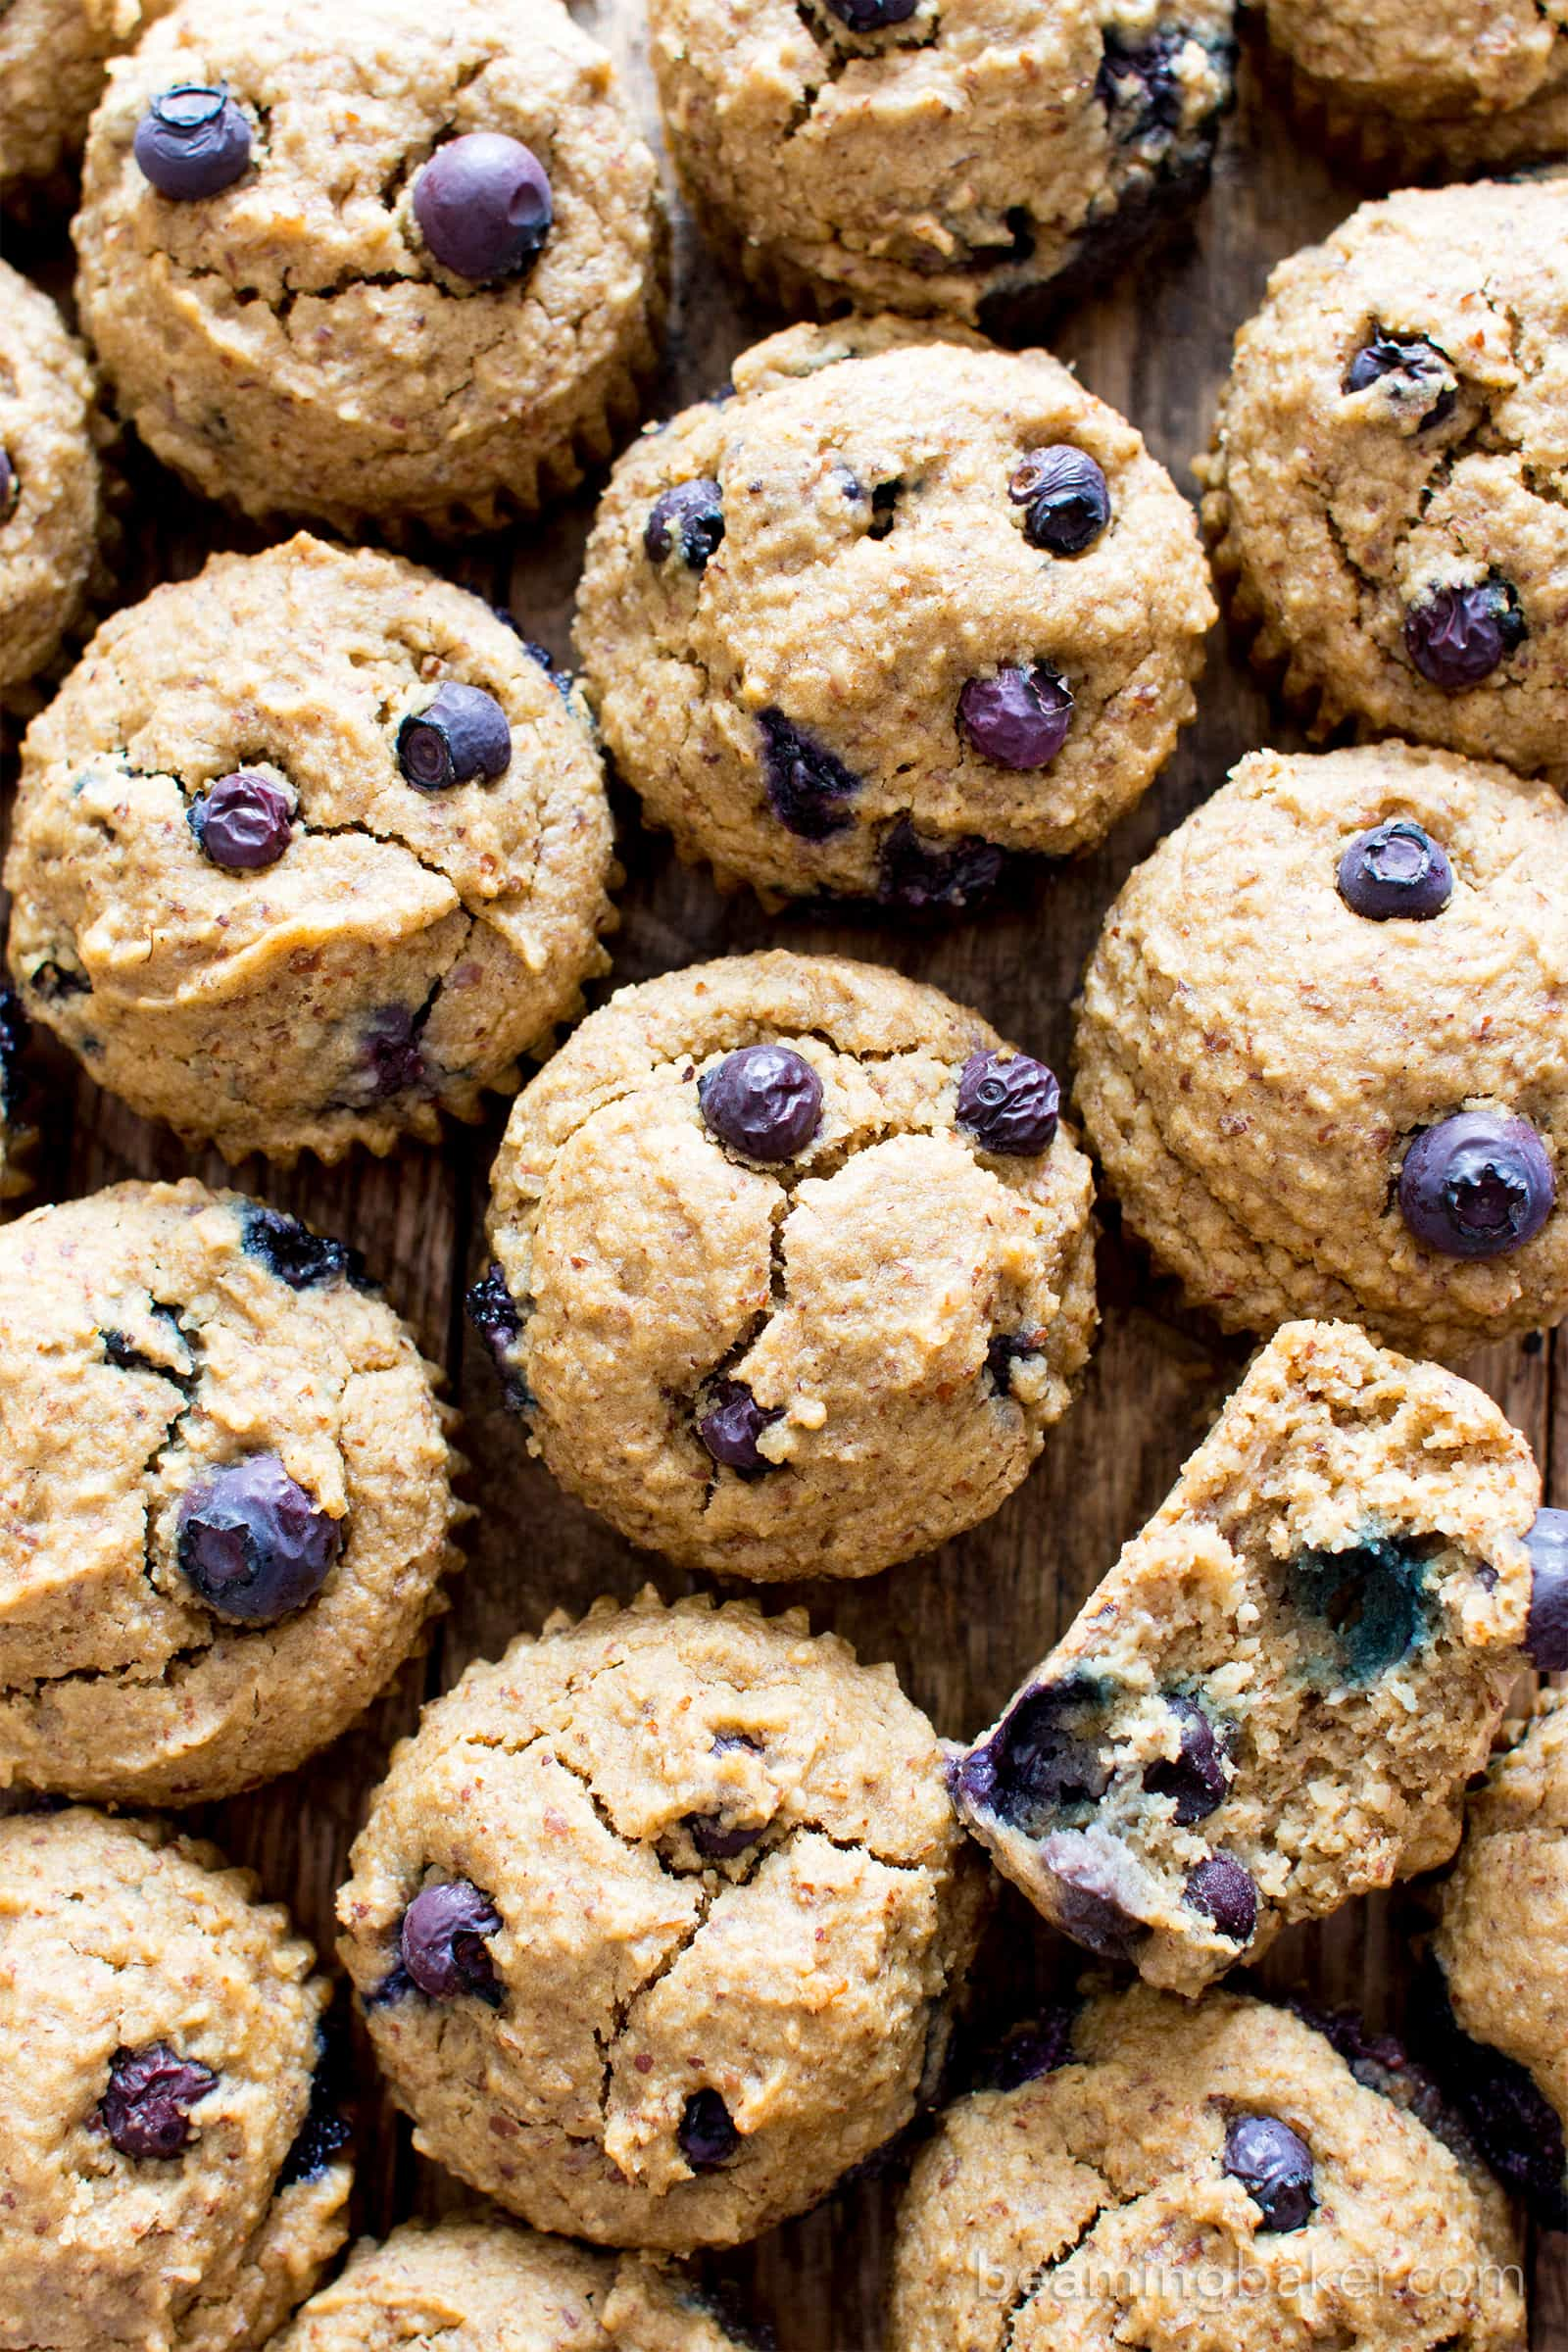 Gluten Free Vegan Blueberry Applesauce Muffins (V, GF): a one bowl recipe for soft & satisfying healthy blueberry muffins made with oat flour and applesauce. #Vegan #GlutenFree #WholeGrain #DairyFree #RefinedSugarFree | BeamingBaker.com